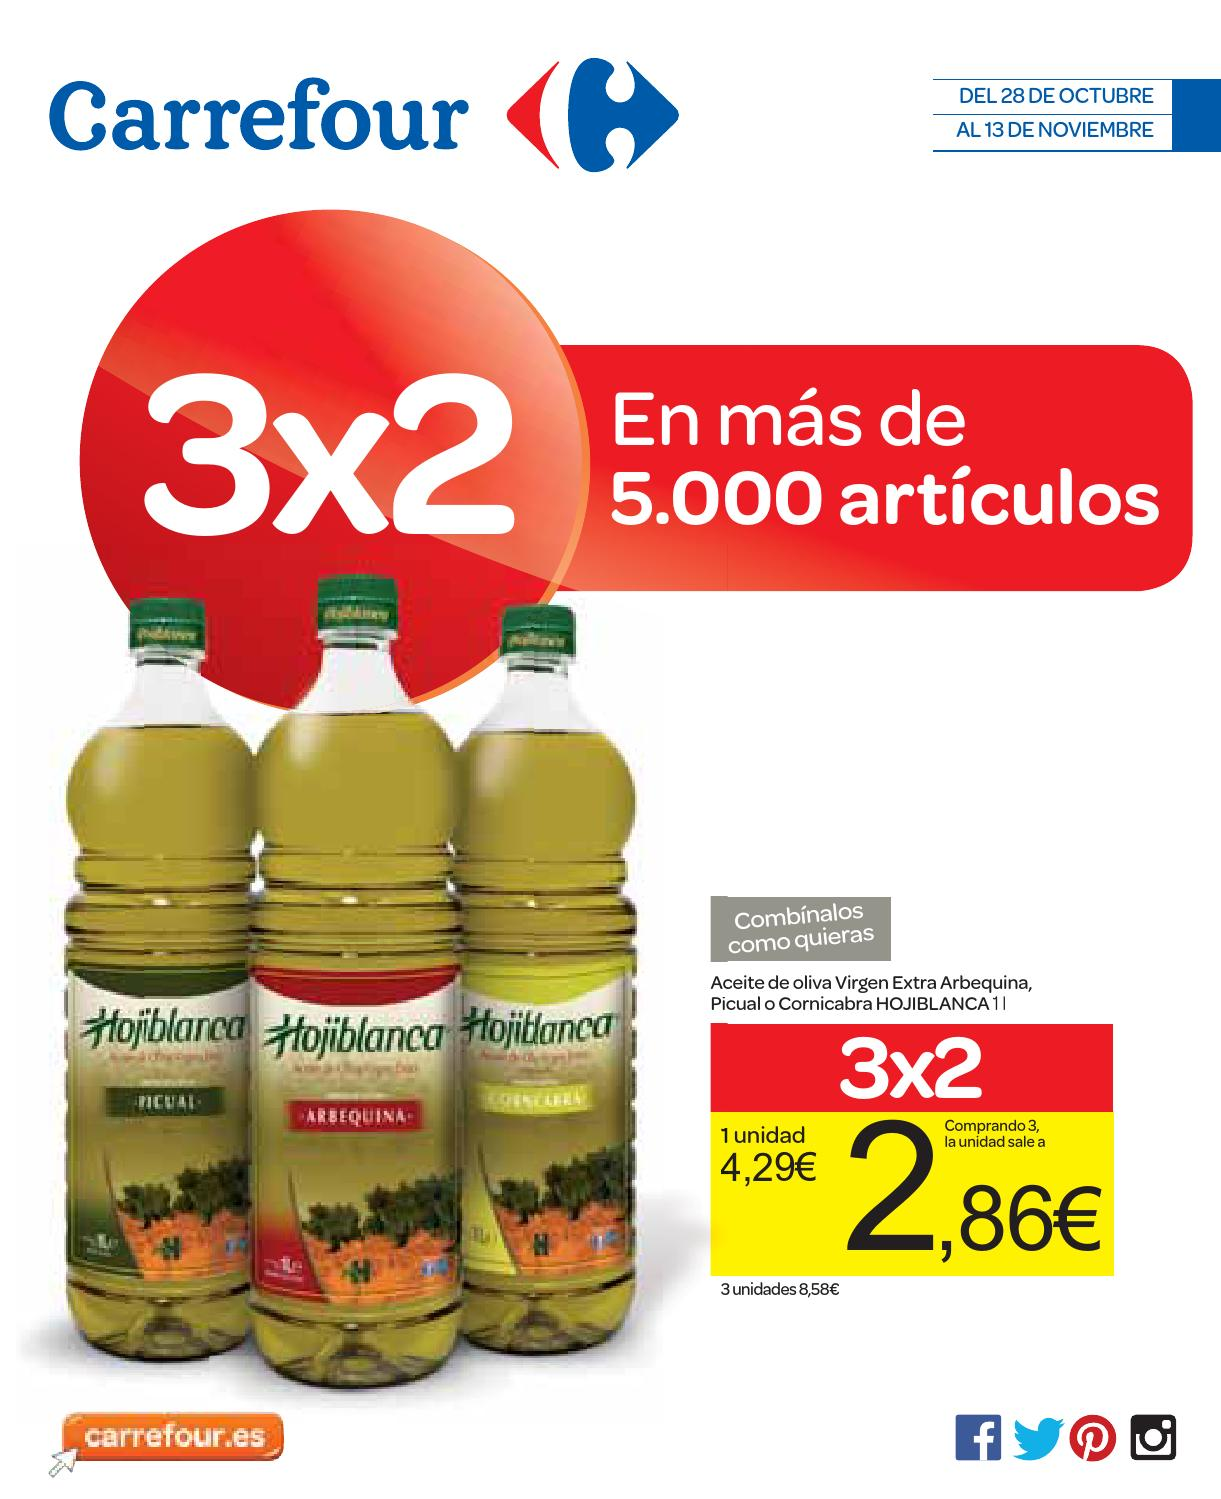 Catalogo carrefour alimentaci n noviembre by catalogo for Piscinas carrefour catalogo 2016